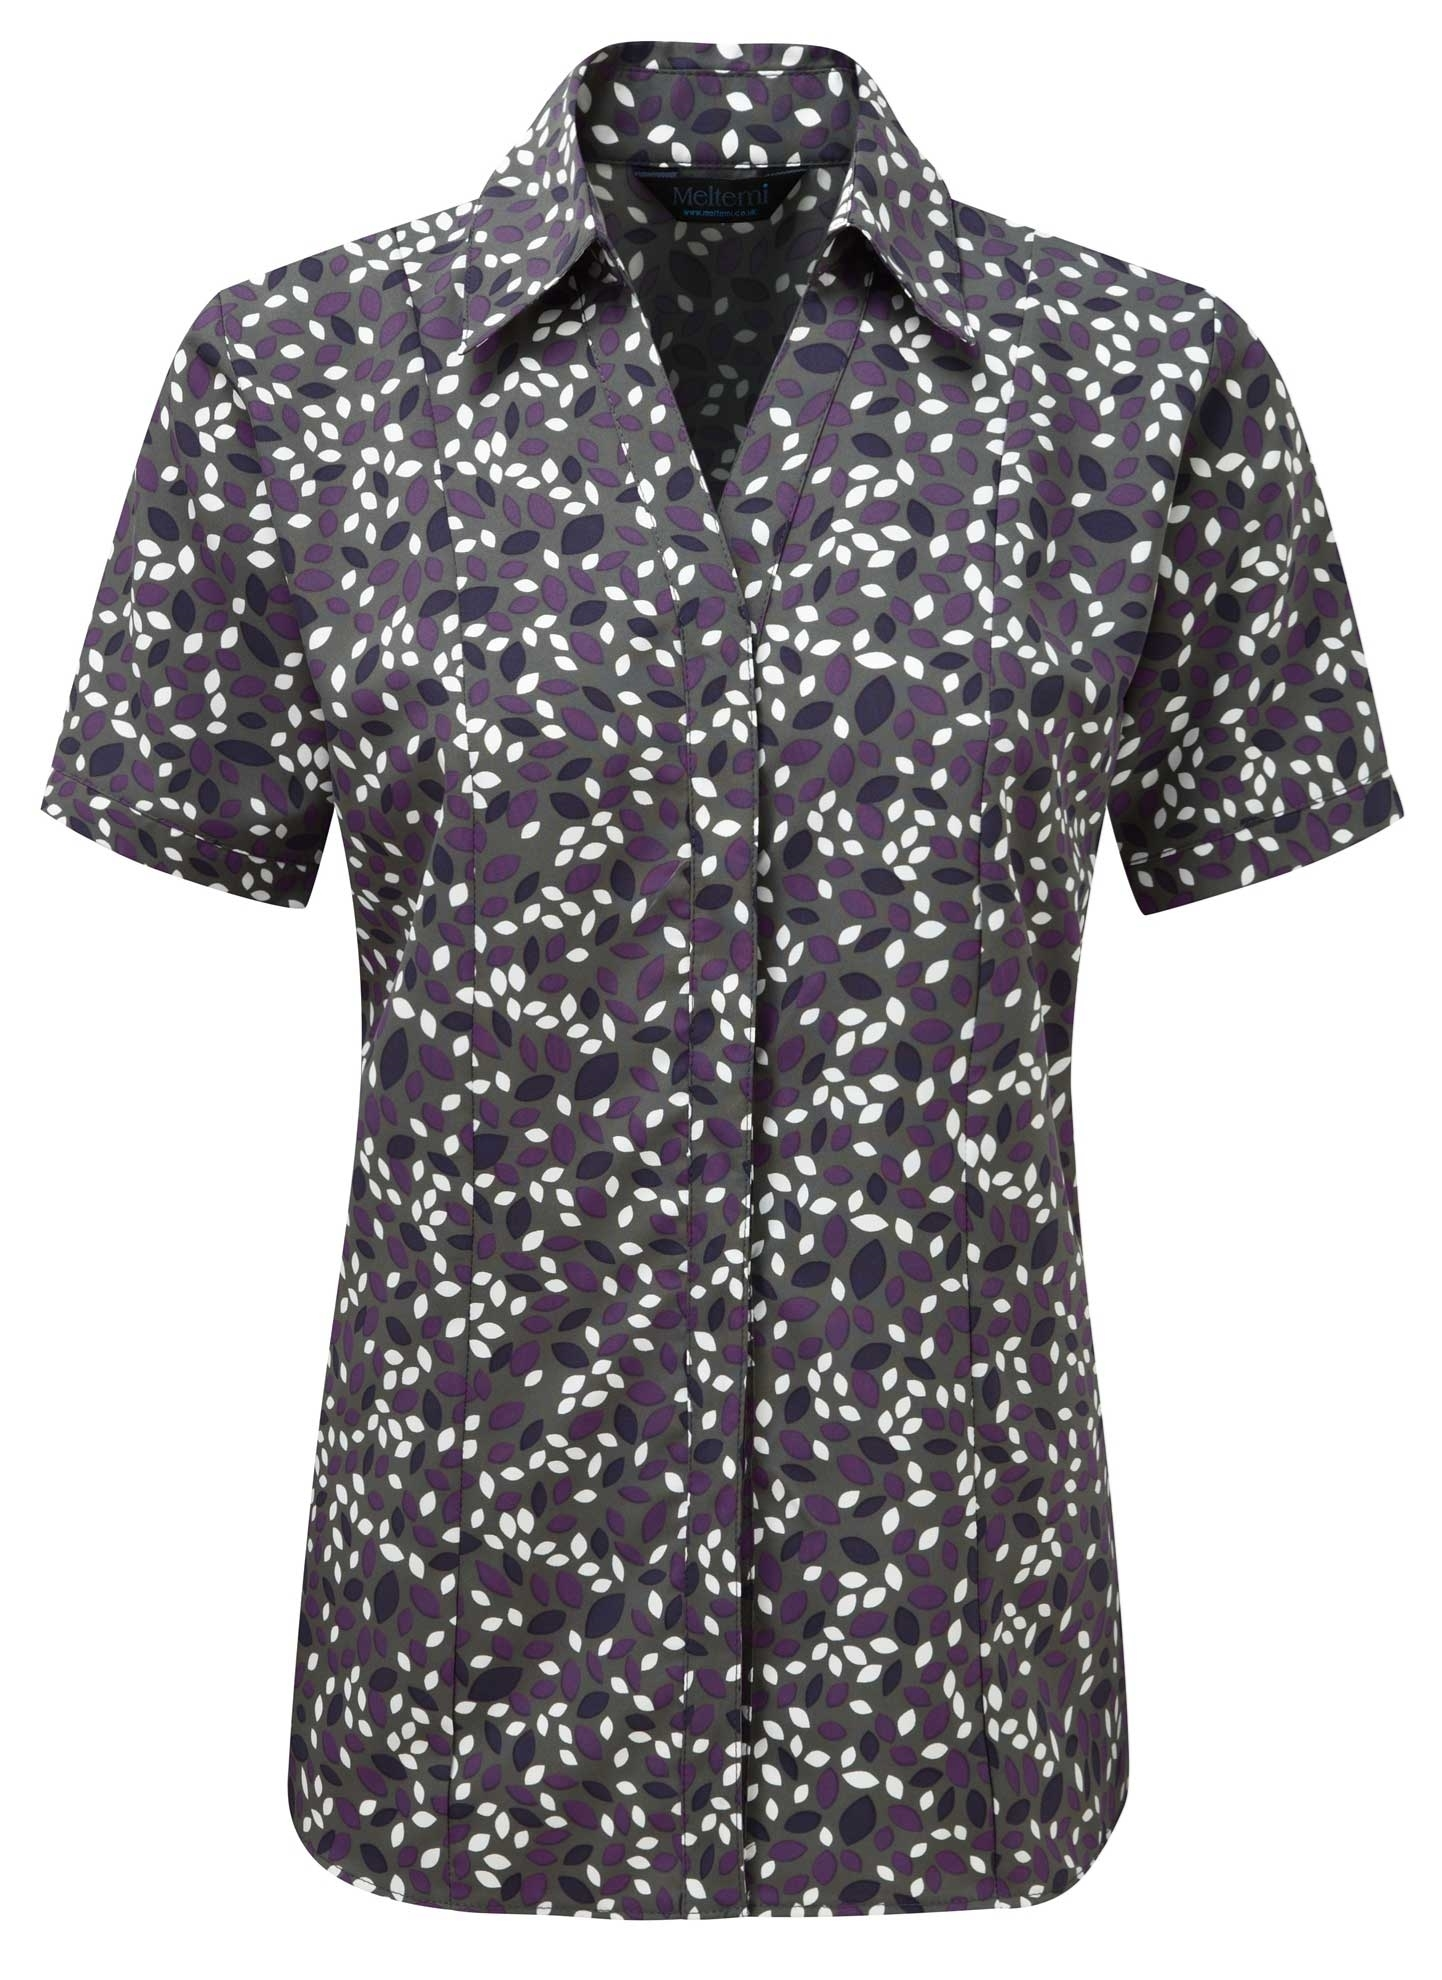 Picture of Semi-Fitted Coolweave Blouse - Grey/Amethyst Lauren Print